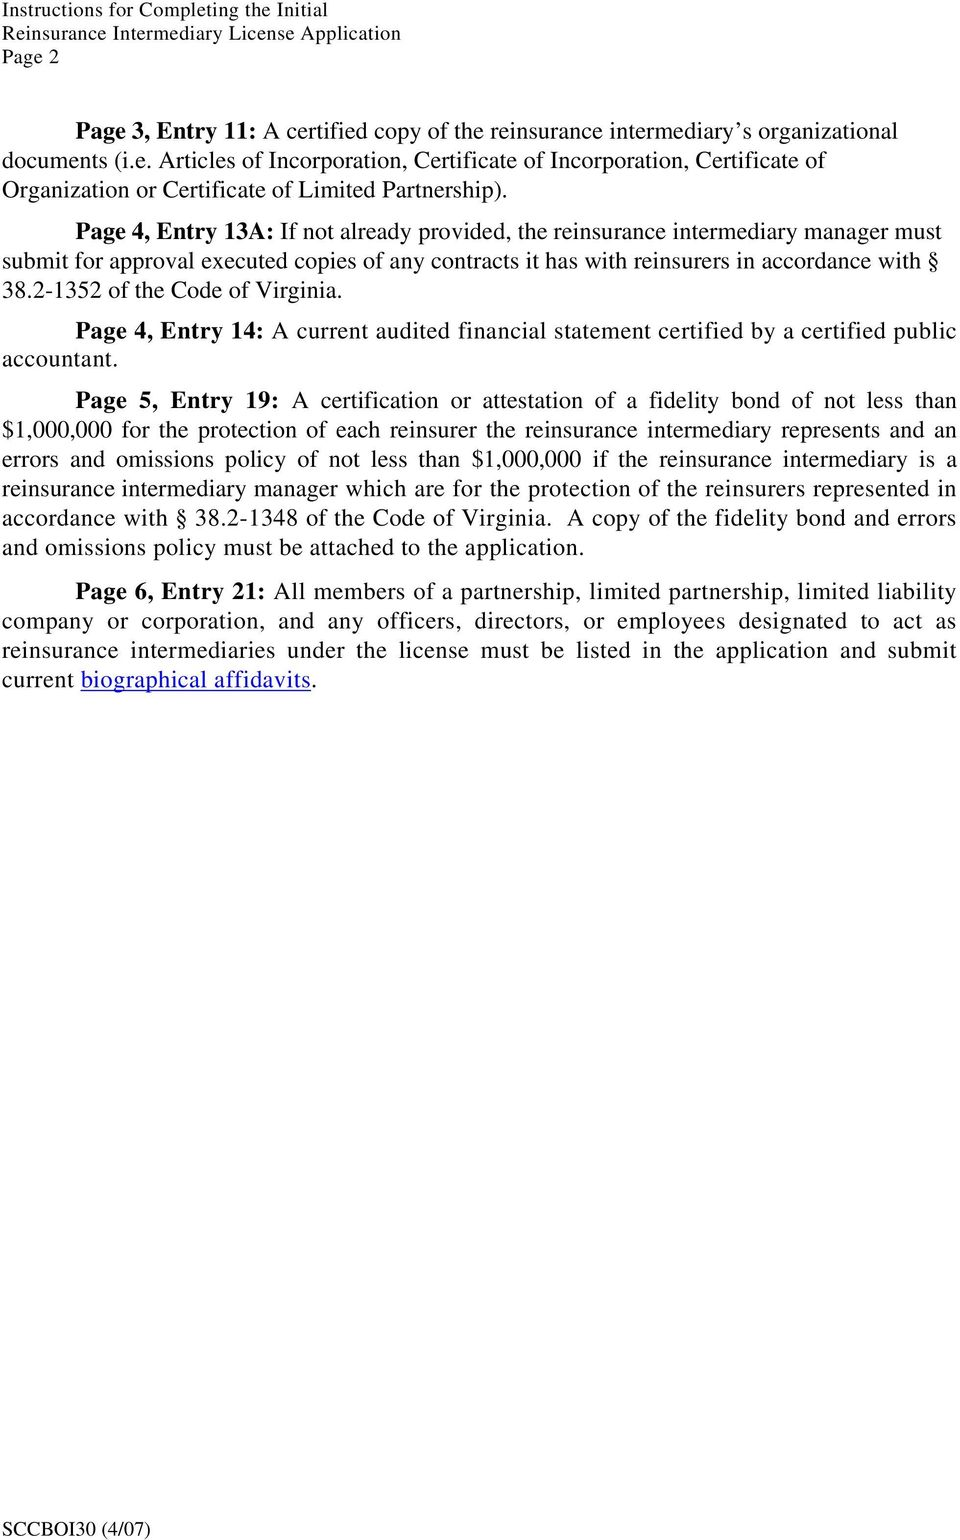 2-1352 of the Code of Virginia. Page 4, Entry 14: A current audited financial statement certified by a certified public accountant.